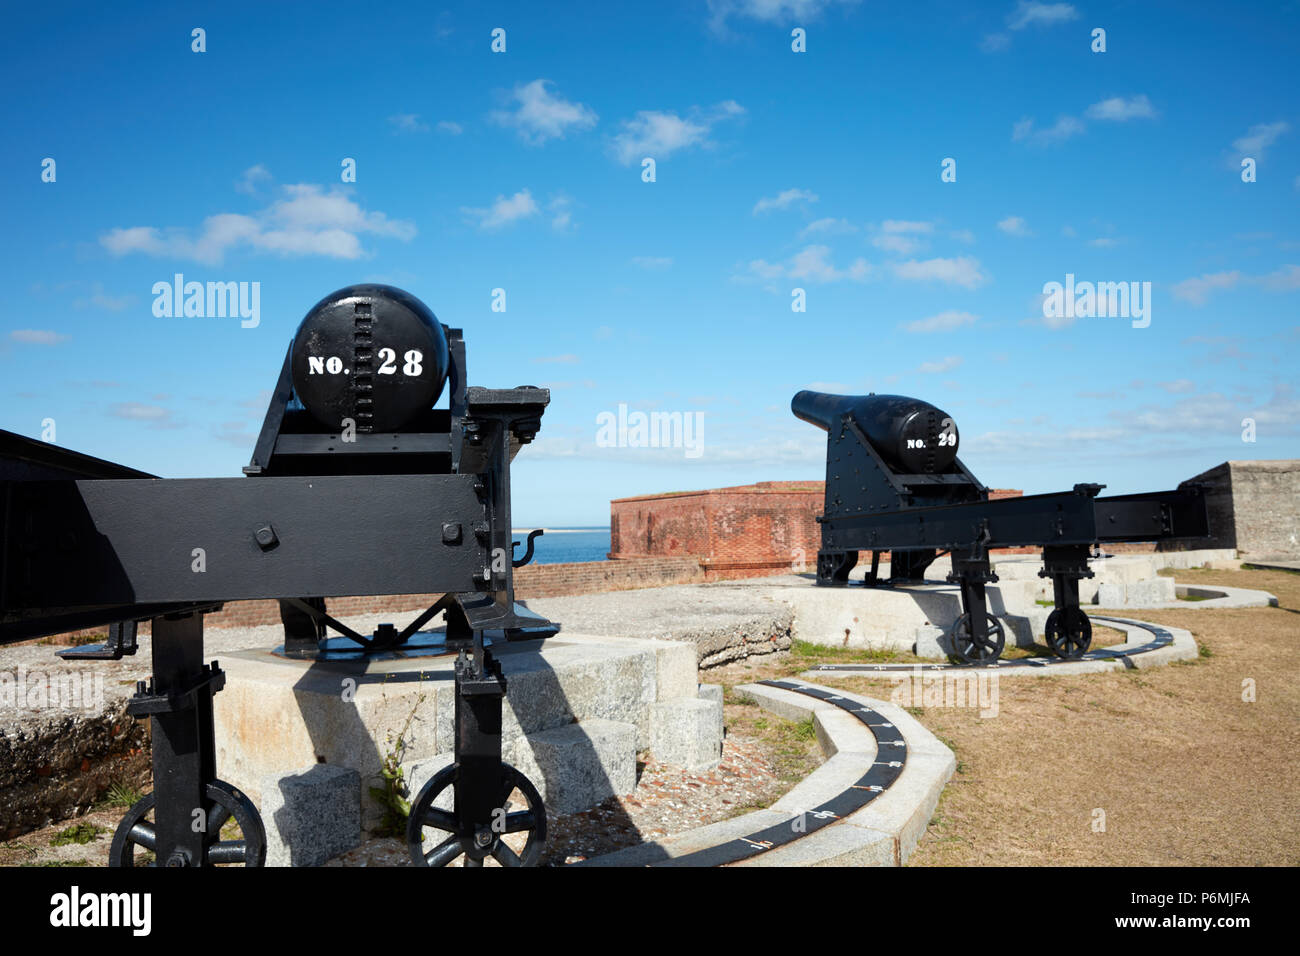 Cannons in rampart of Fort Clinch - Stock Image